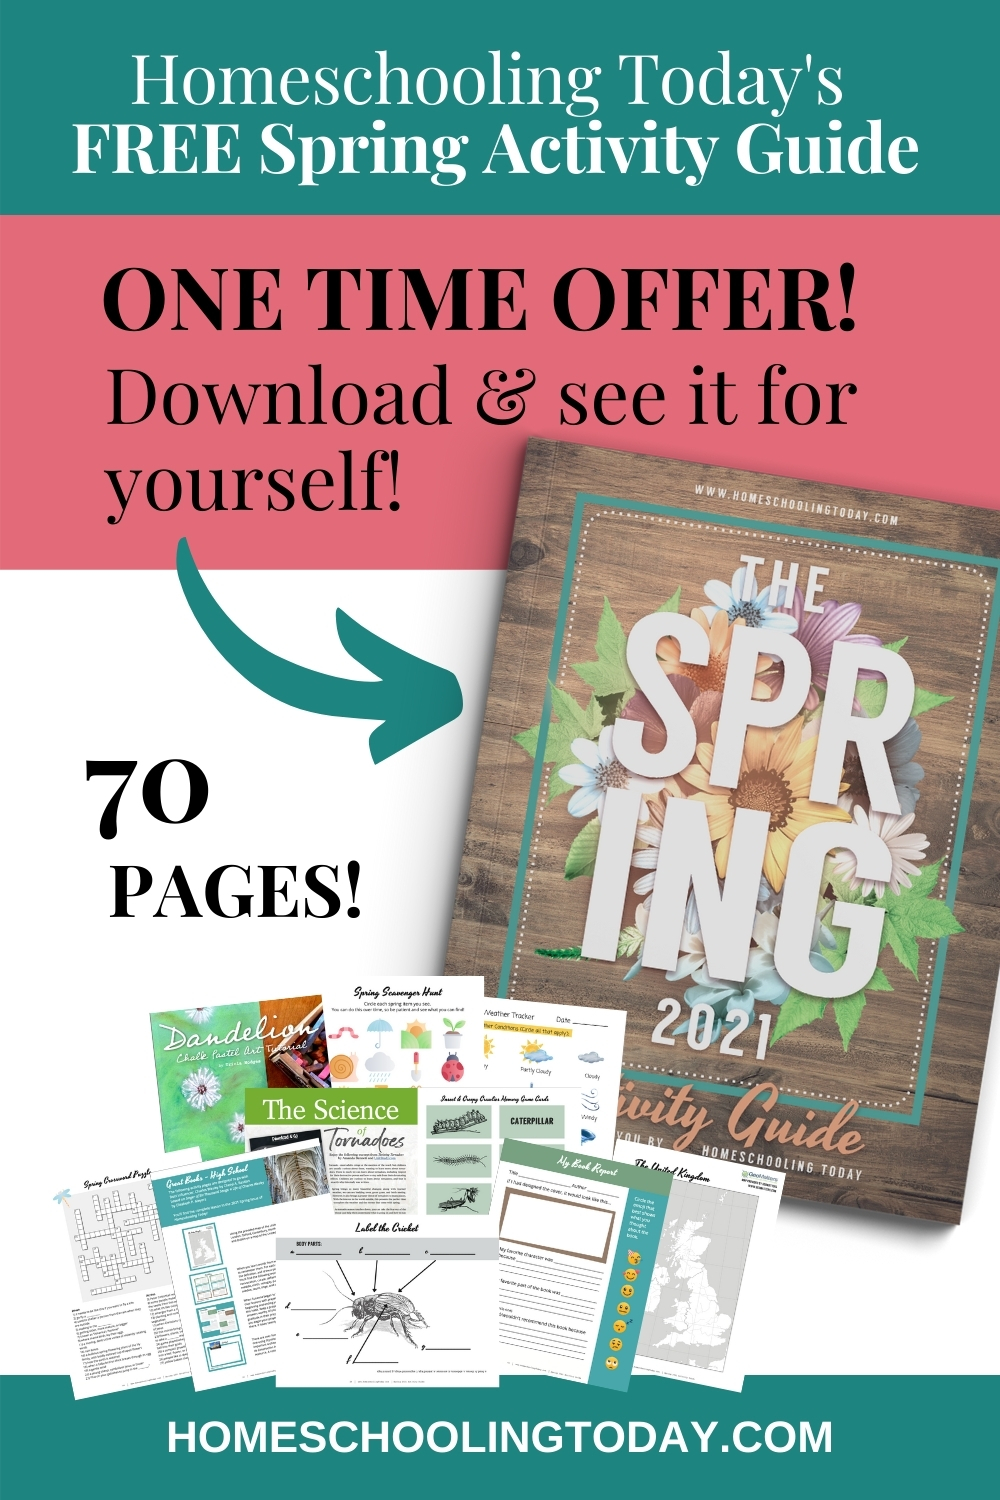 Pinterest pin offer for free spring activity guide